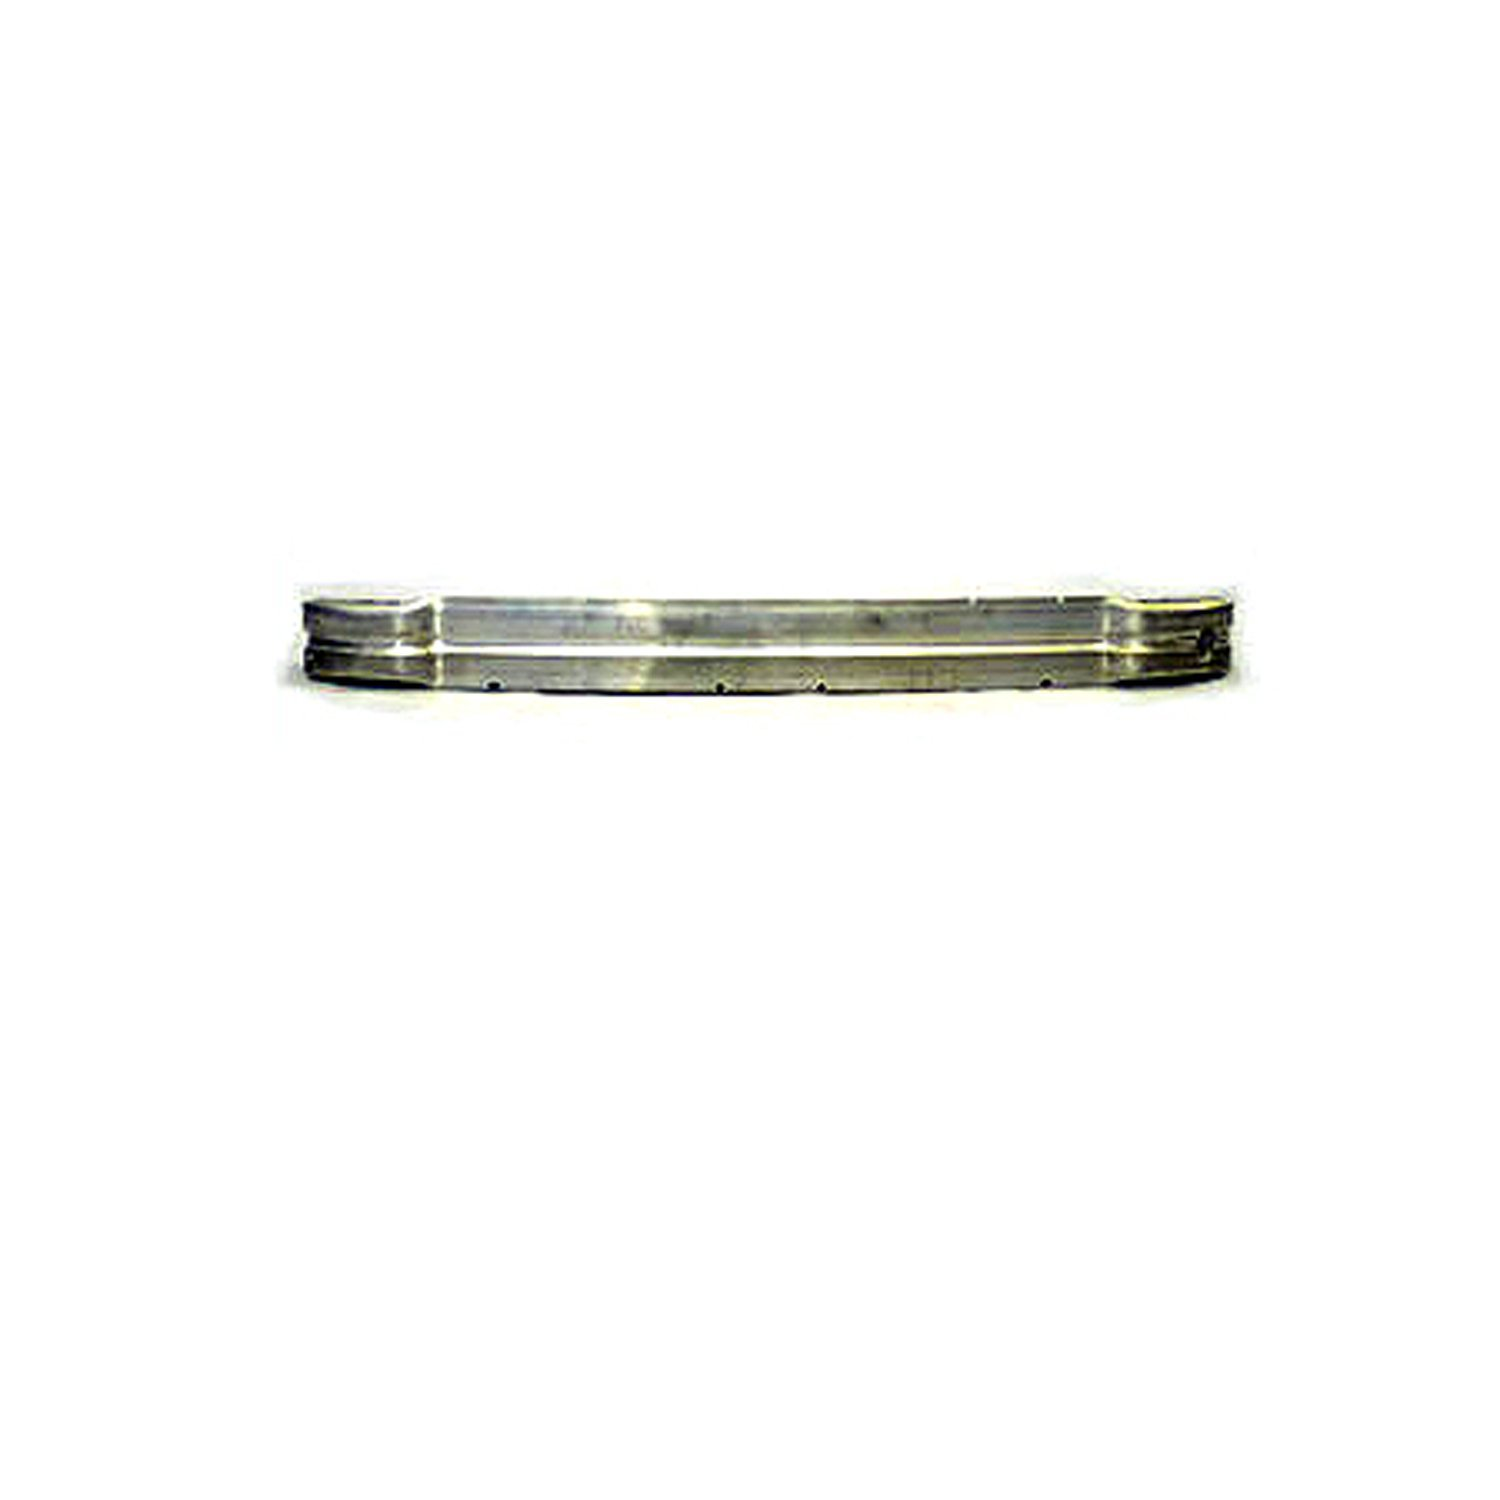 Crash Parts Plus Crash Parts Plus NSF Front Silver Bumper Reinforcement for Audi A5, S4, S5